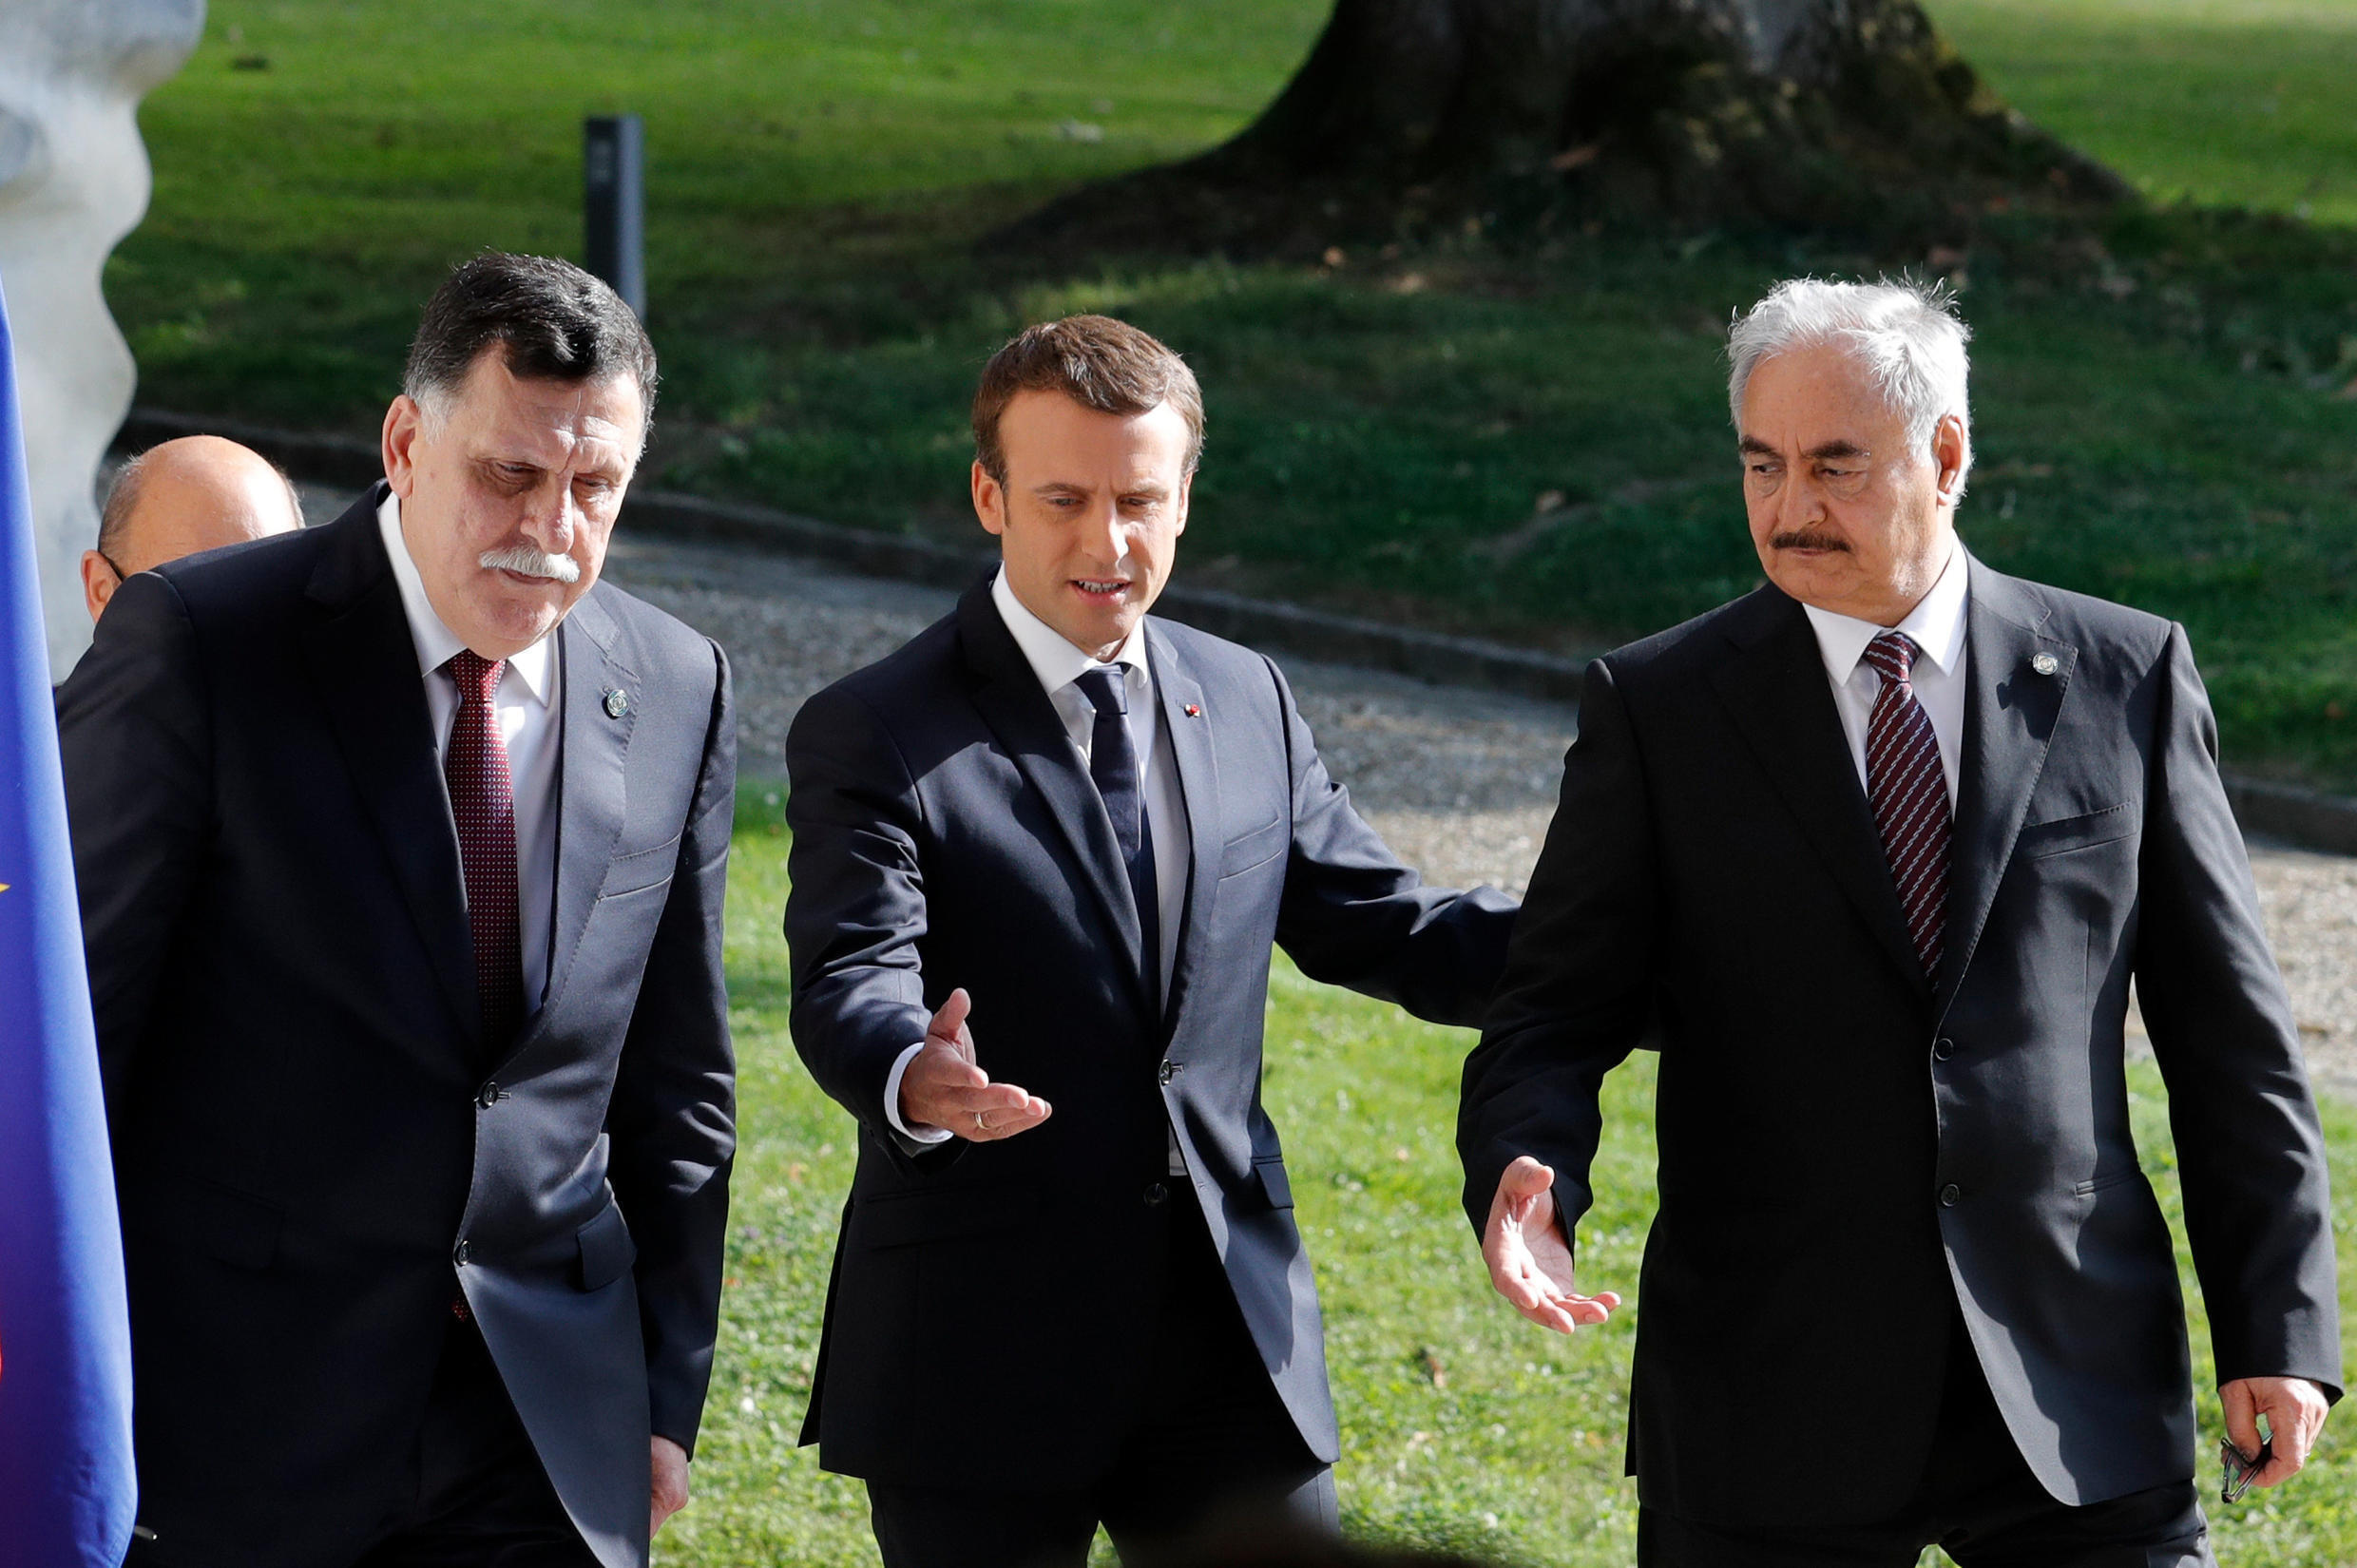 General Khalifa Haftar, commander in the Libyan National Army (R) and Libyan Prime Minister Fayez al-Sarraj (L) with French President Emmanuel Macron (M) after peace talks in La Celle-Saint-Cloud near Paris, on 25 July 2017.